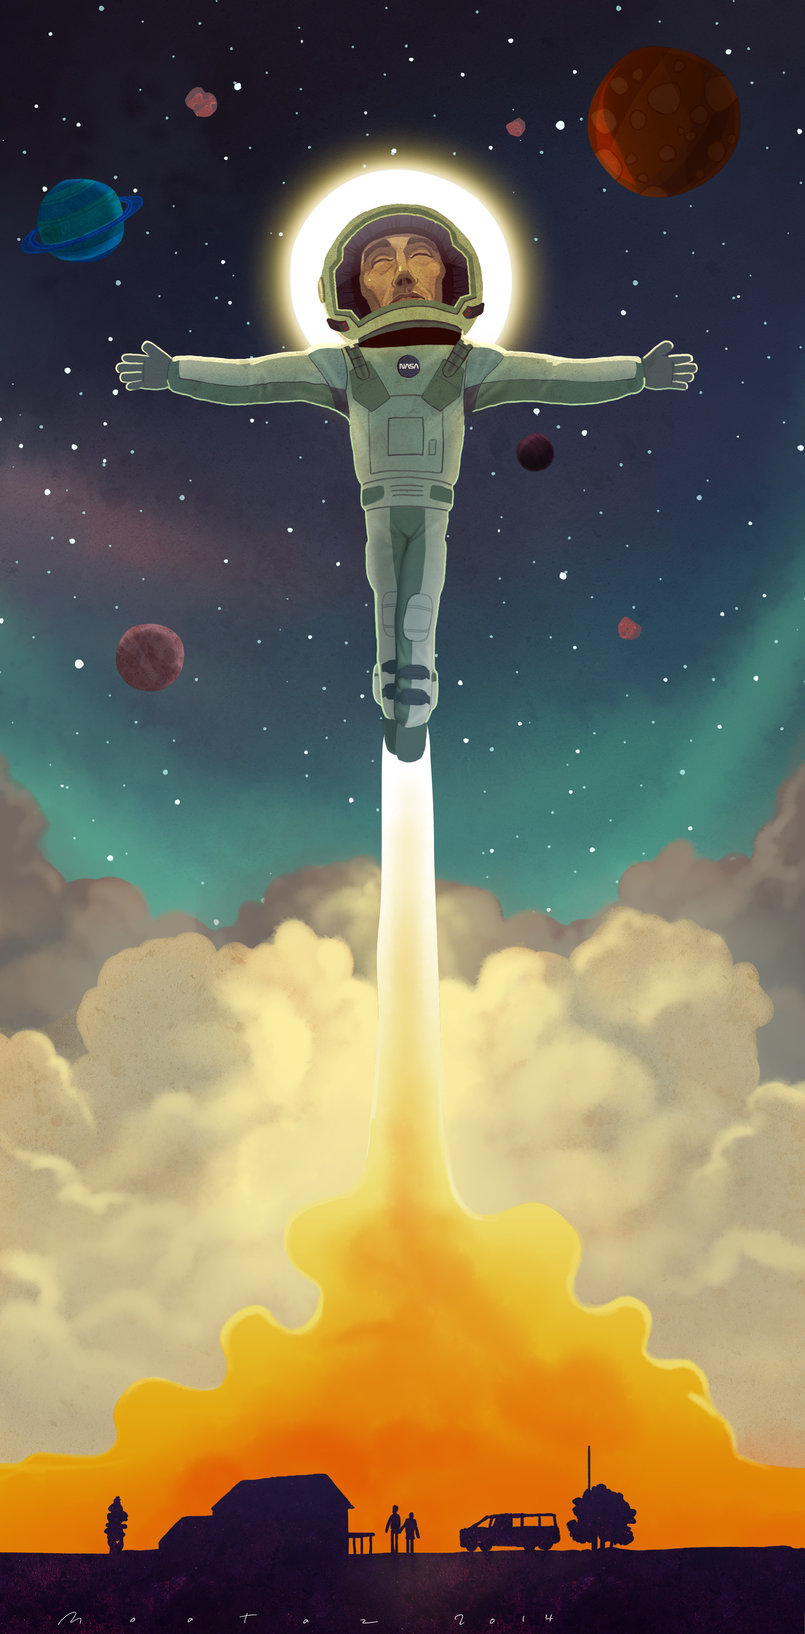 Interstellar Movie FanArt